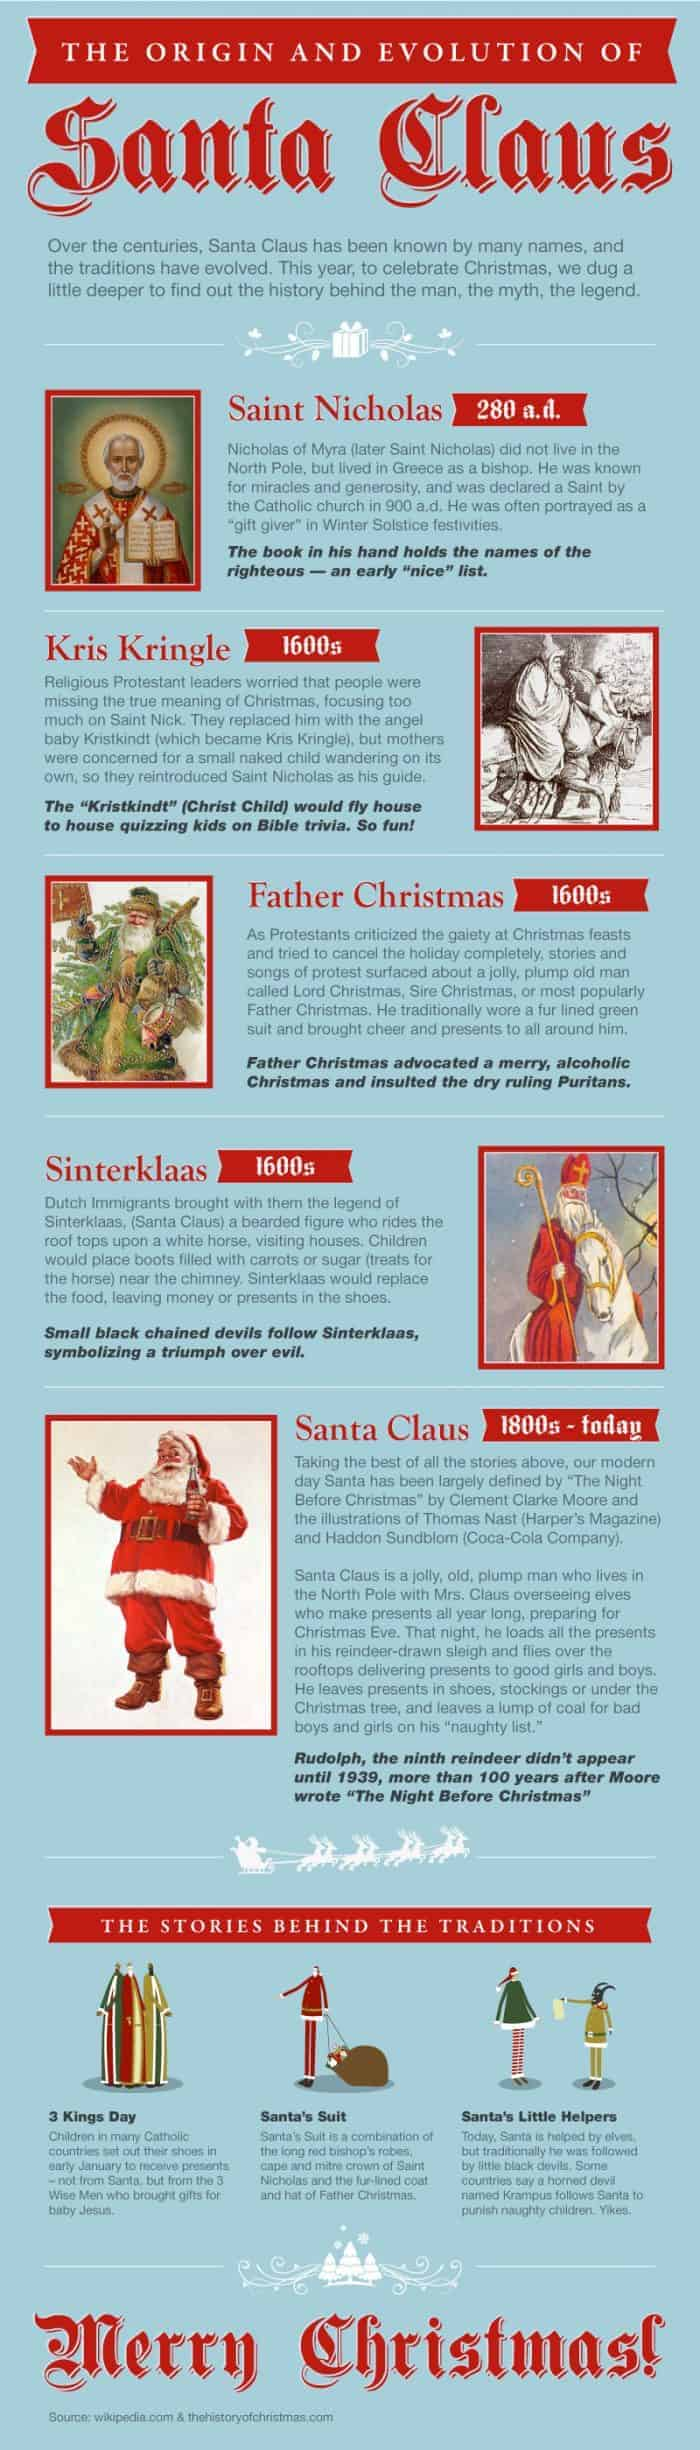 the_origin_of_santa